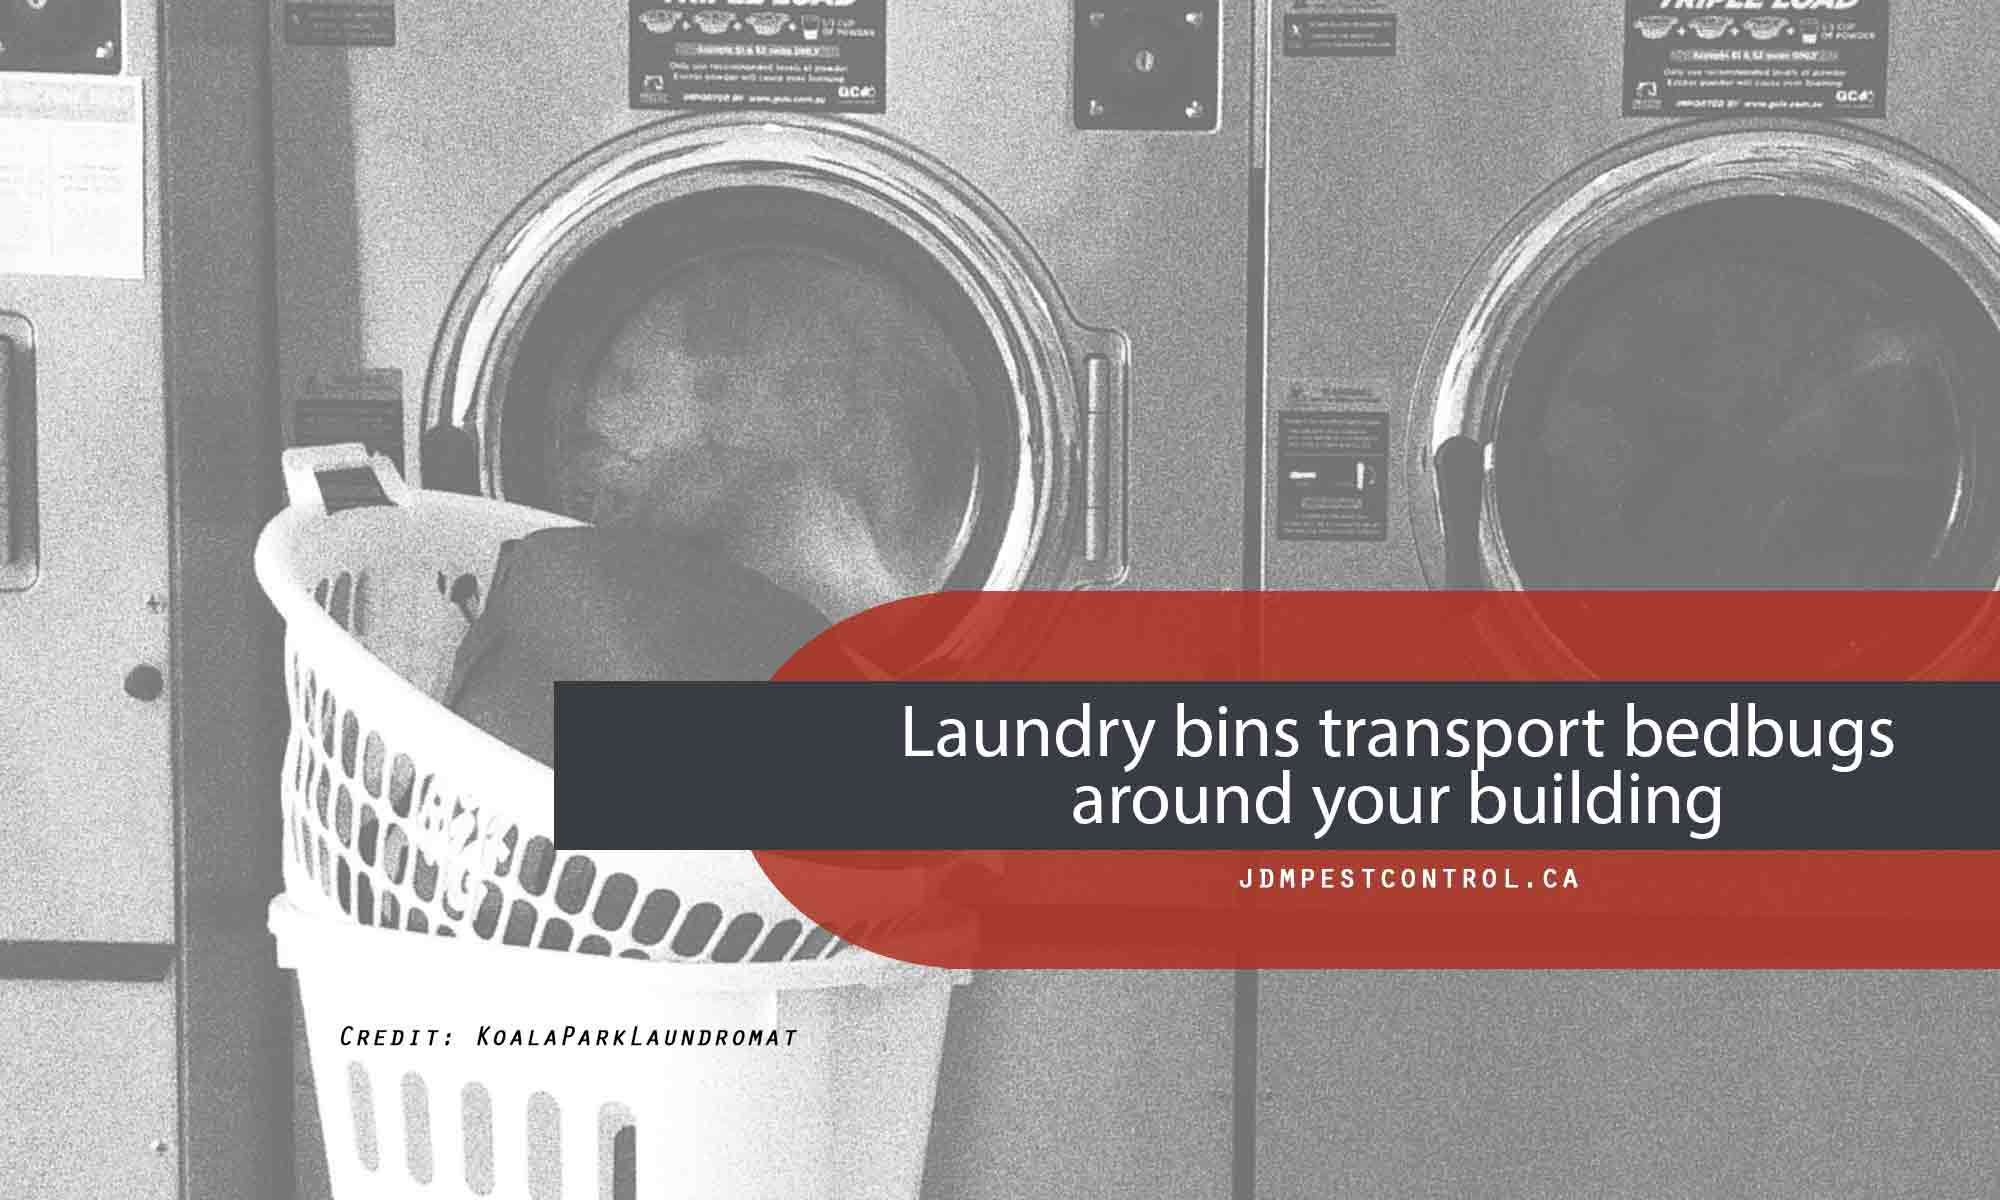 Laundry bins transport bedbugs around your building